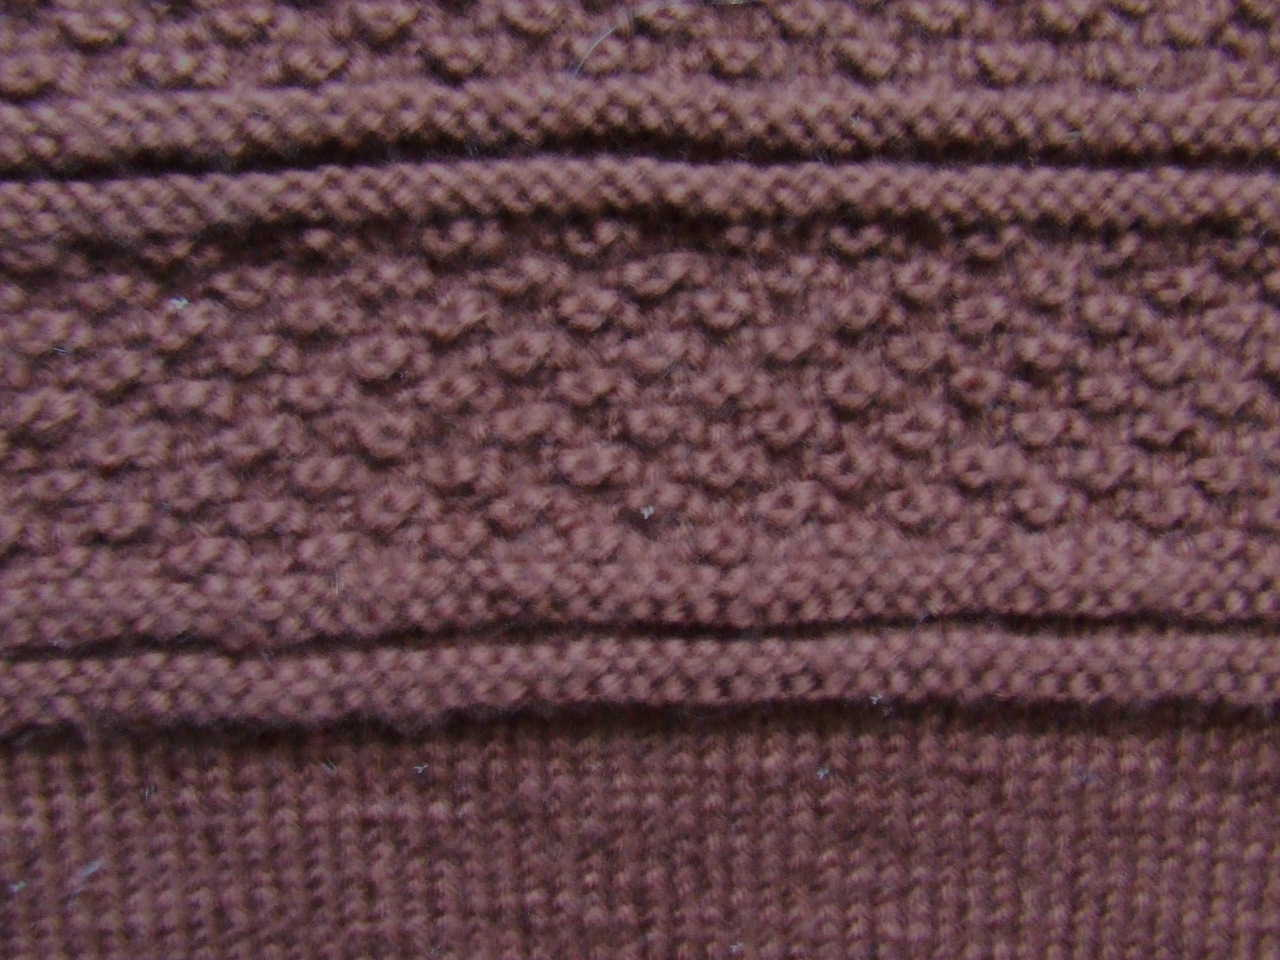 Brown gansey detail